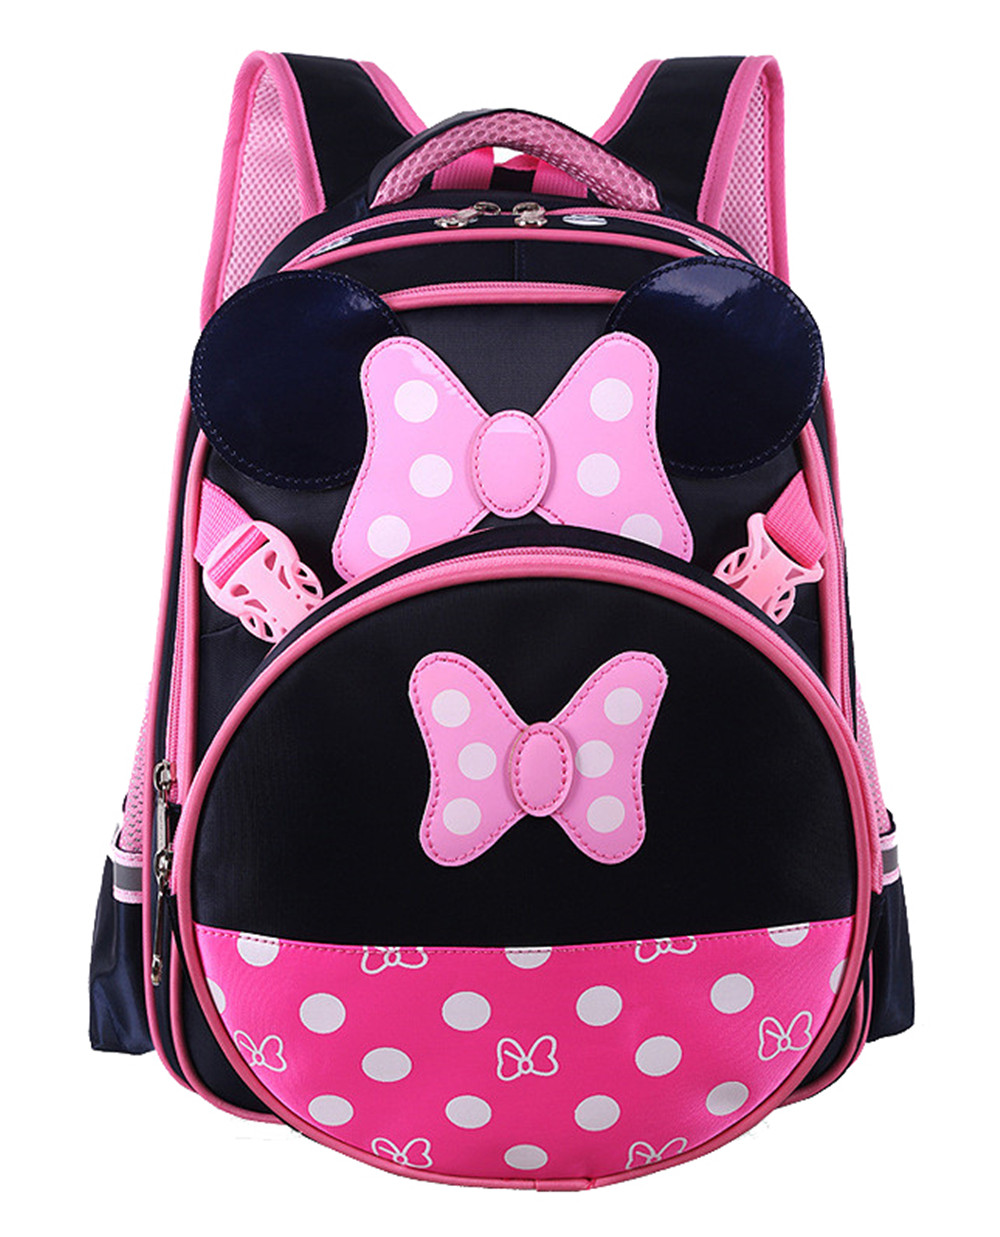 Children School Bags Girls Orthopedic Cartoon Schoolbag Backpack Kids Princess School Backpack Set Kids Satchel Sac Enfant